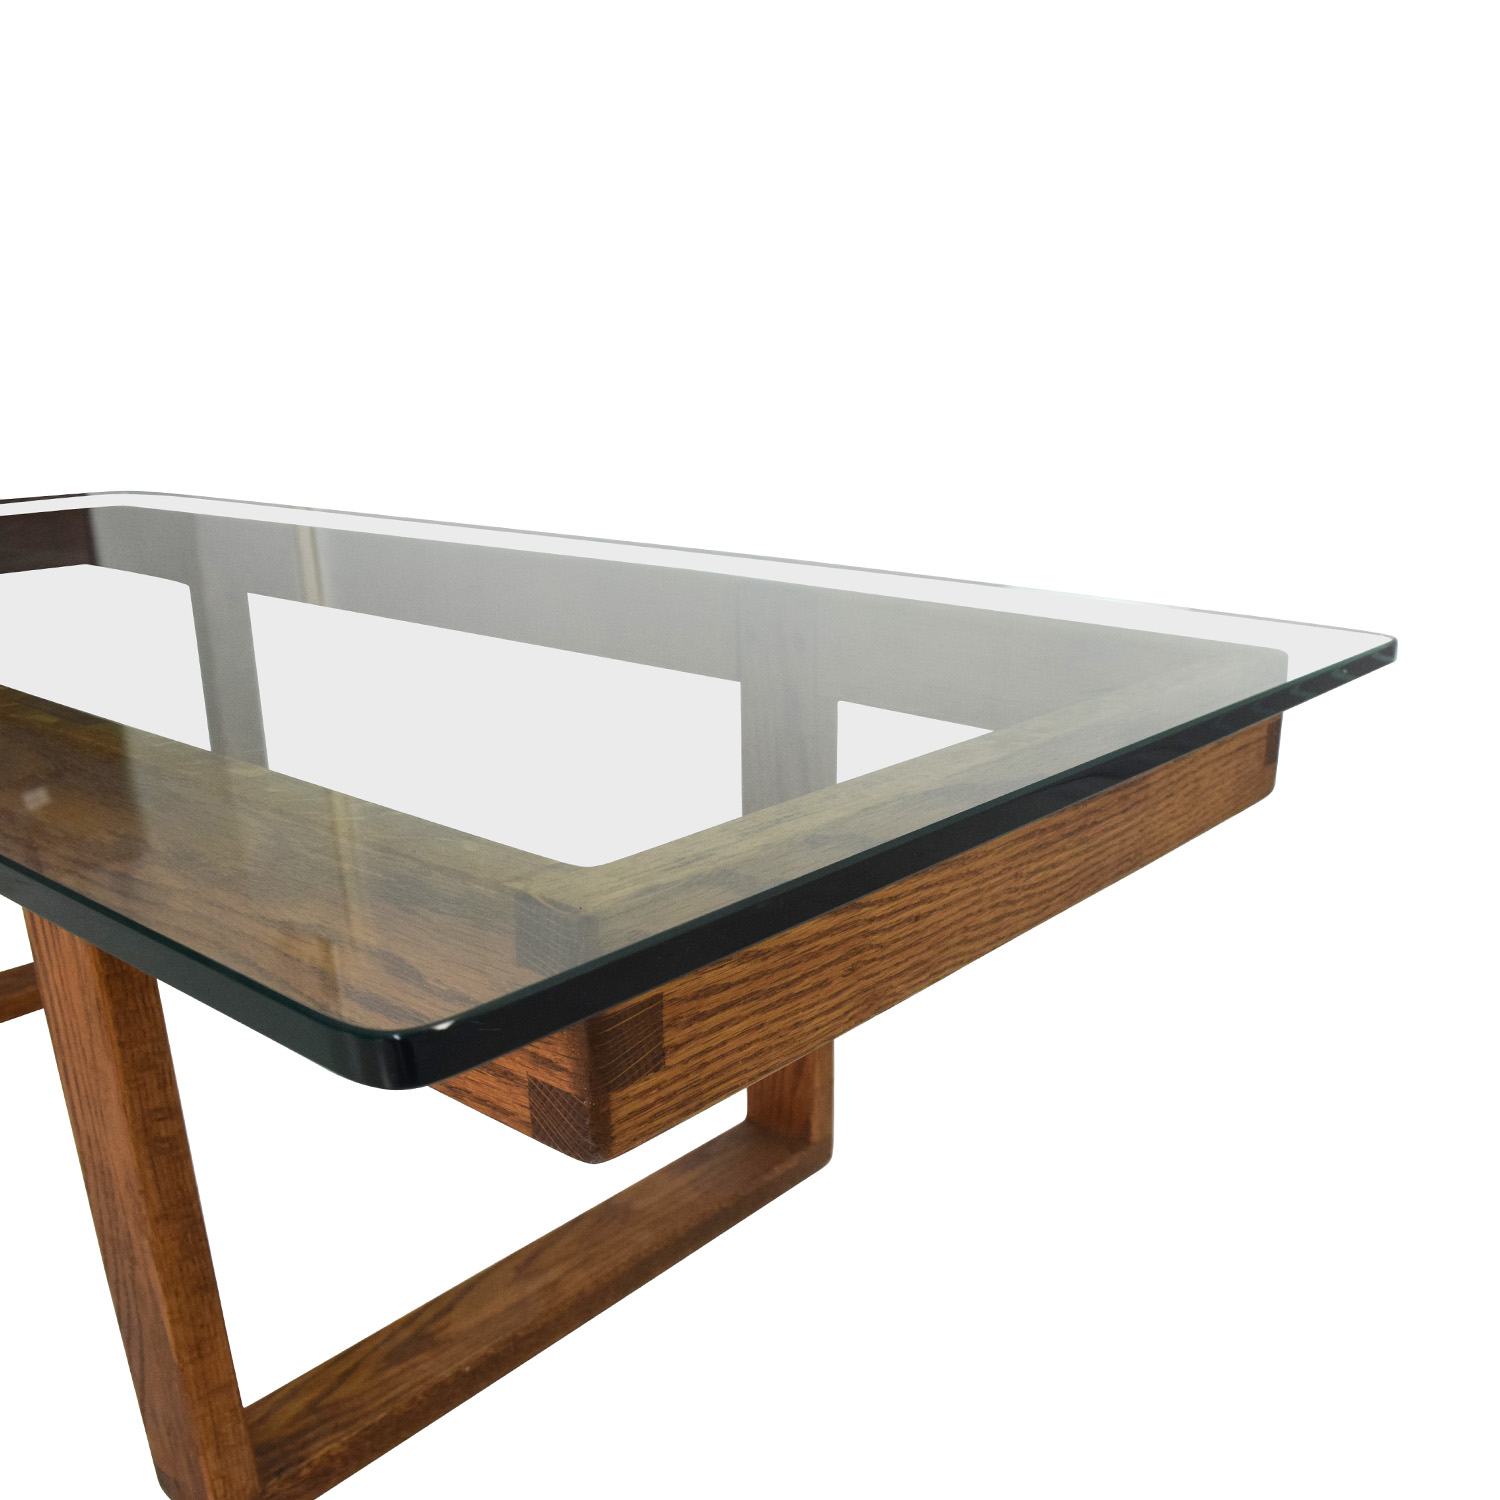 Buy Glass Coffee Table 60 Off Unknown Brand Antique Glass Coffee Table Tables